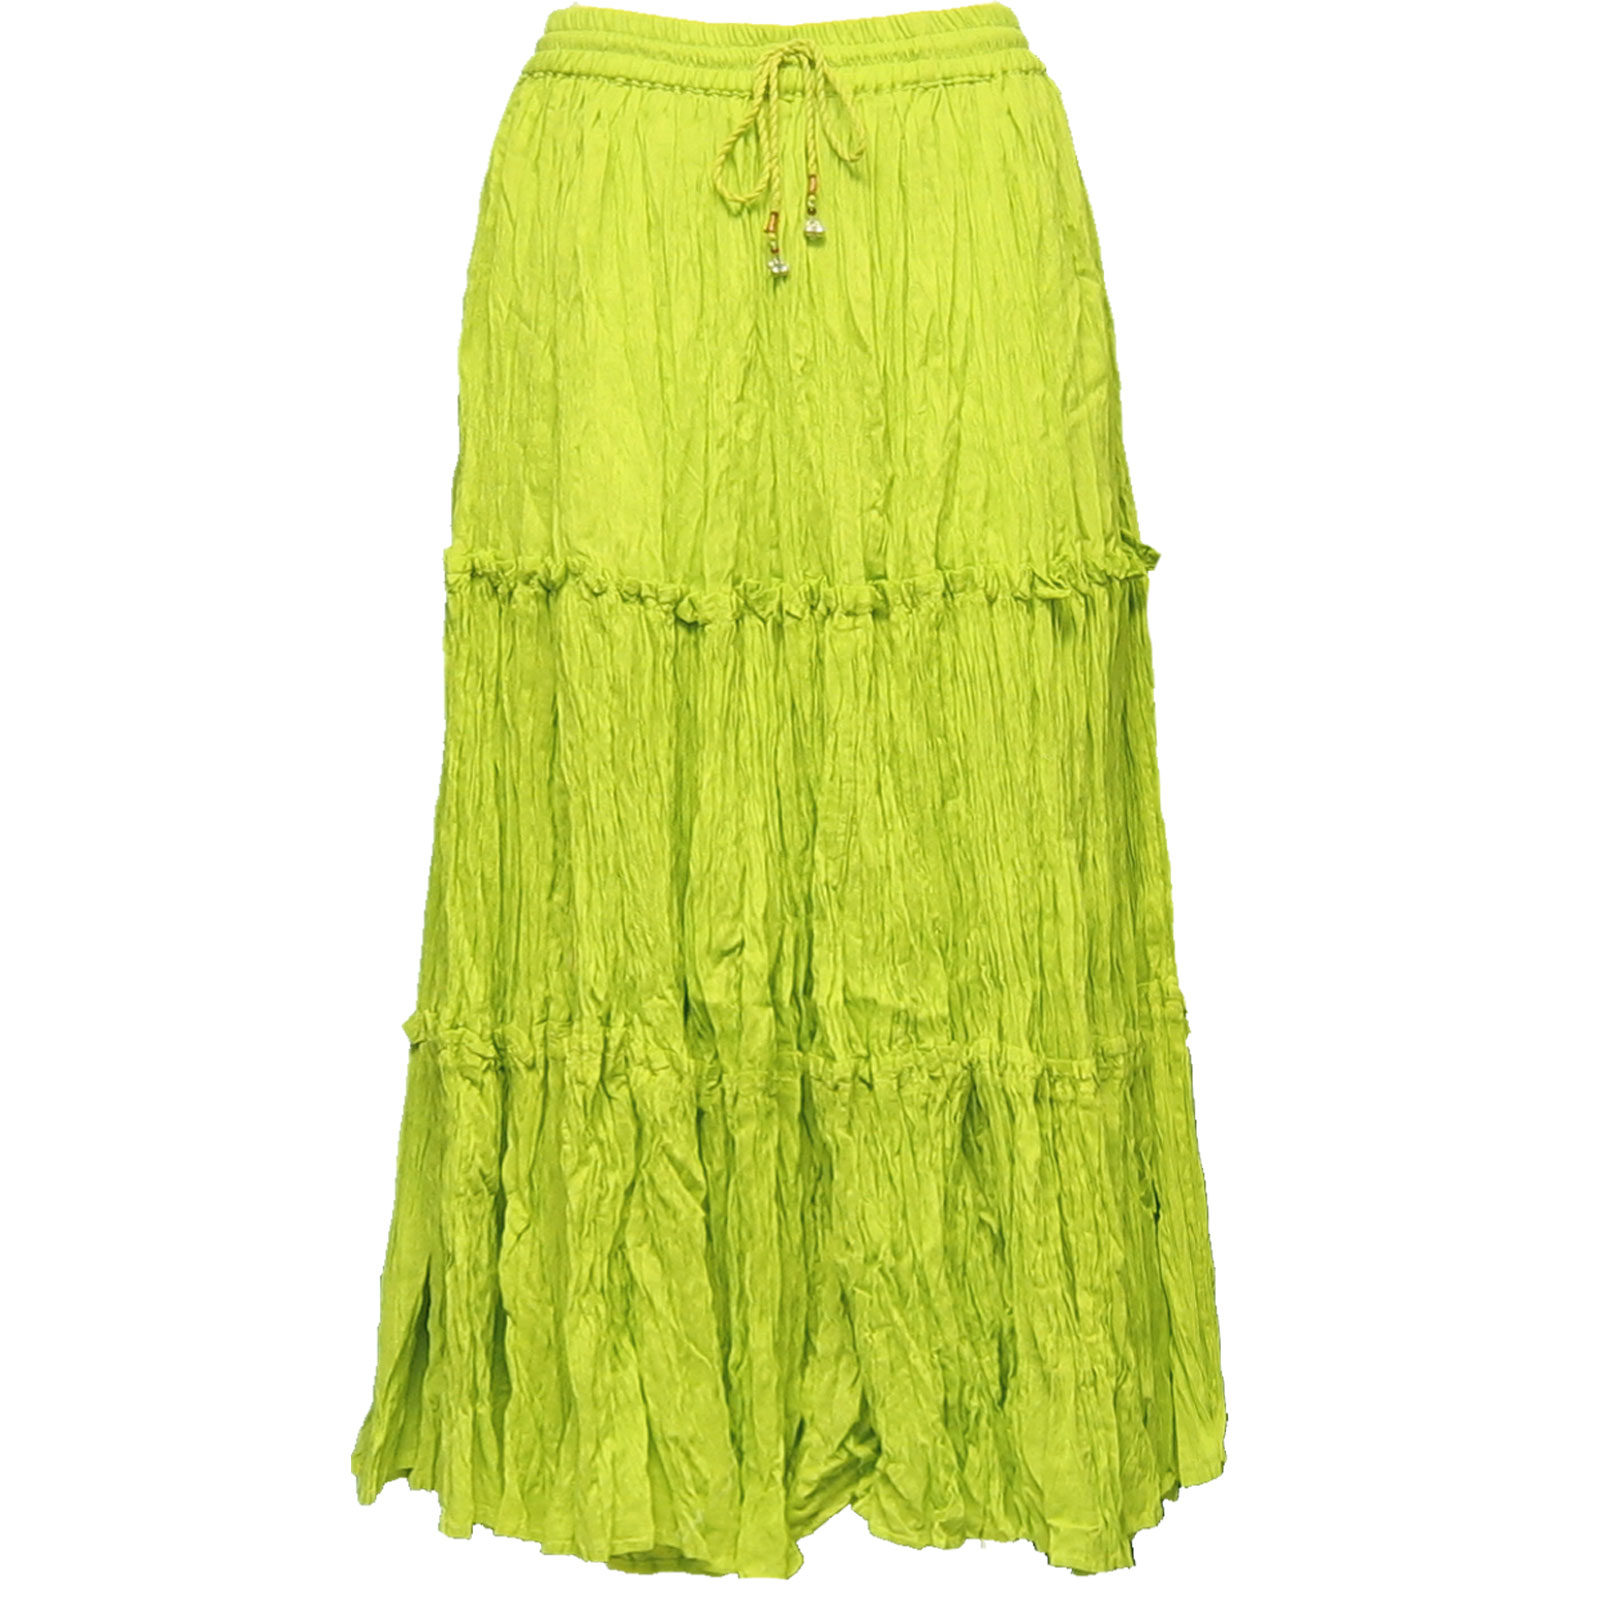 Wholesale Skirts - Cotton Three Tier Broomstick 500 & 529 Calf Length - Spring Green - One Size (S-XL)